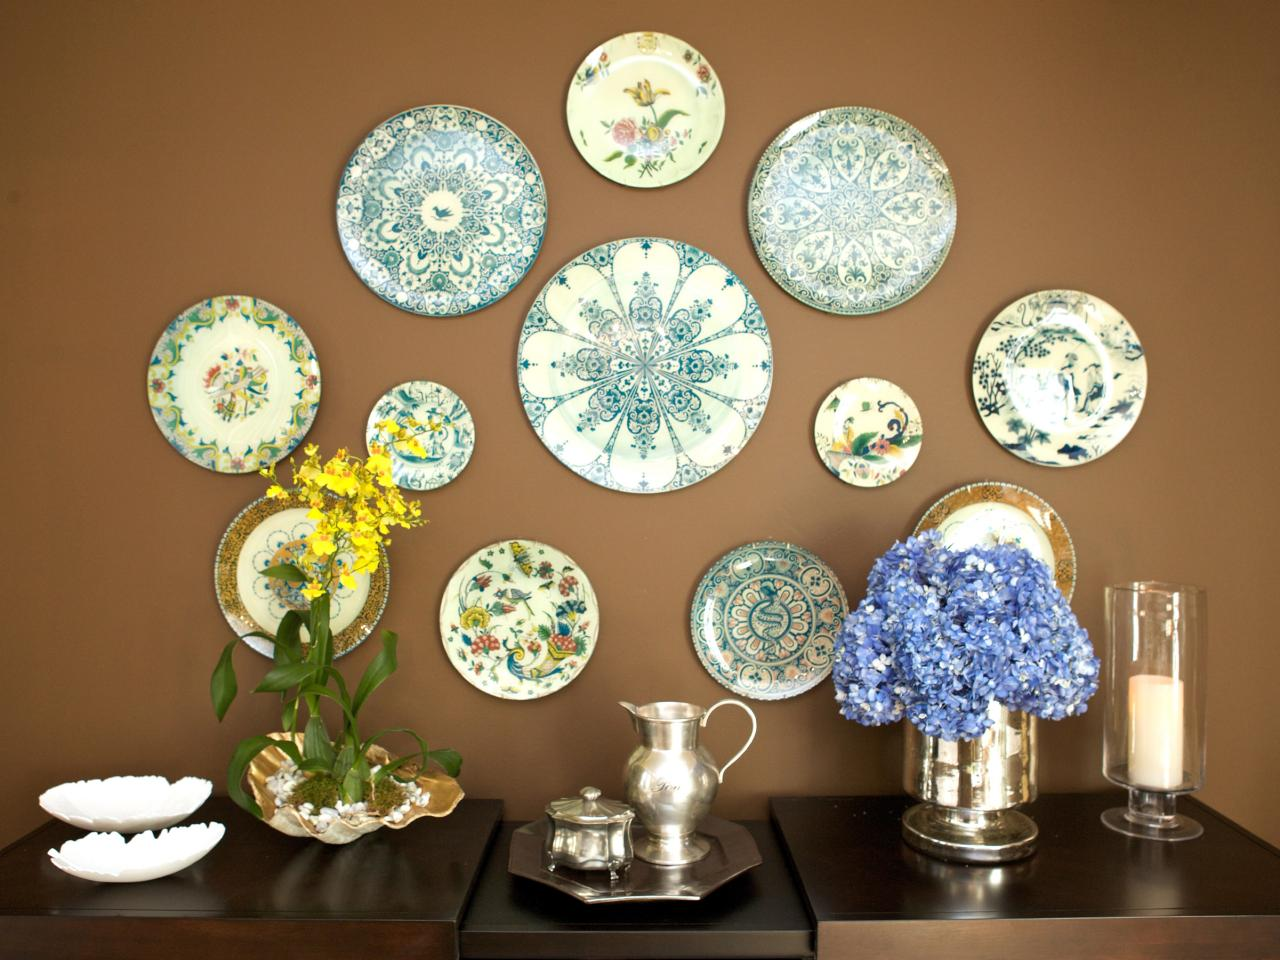 13 Plate Collection Eclectic Dining Room With Wall Art Plates